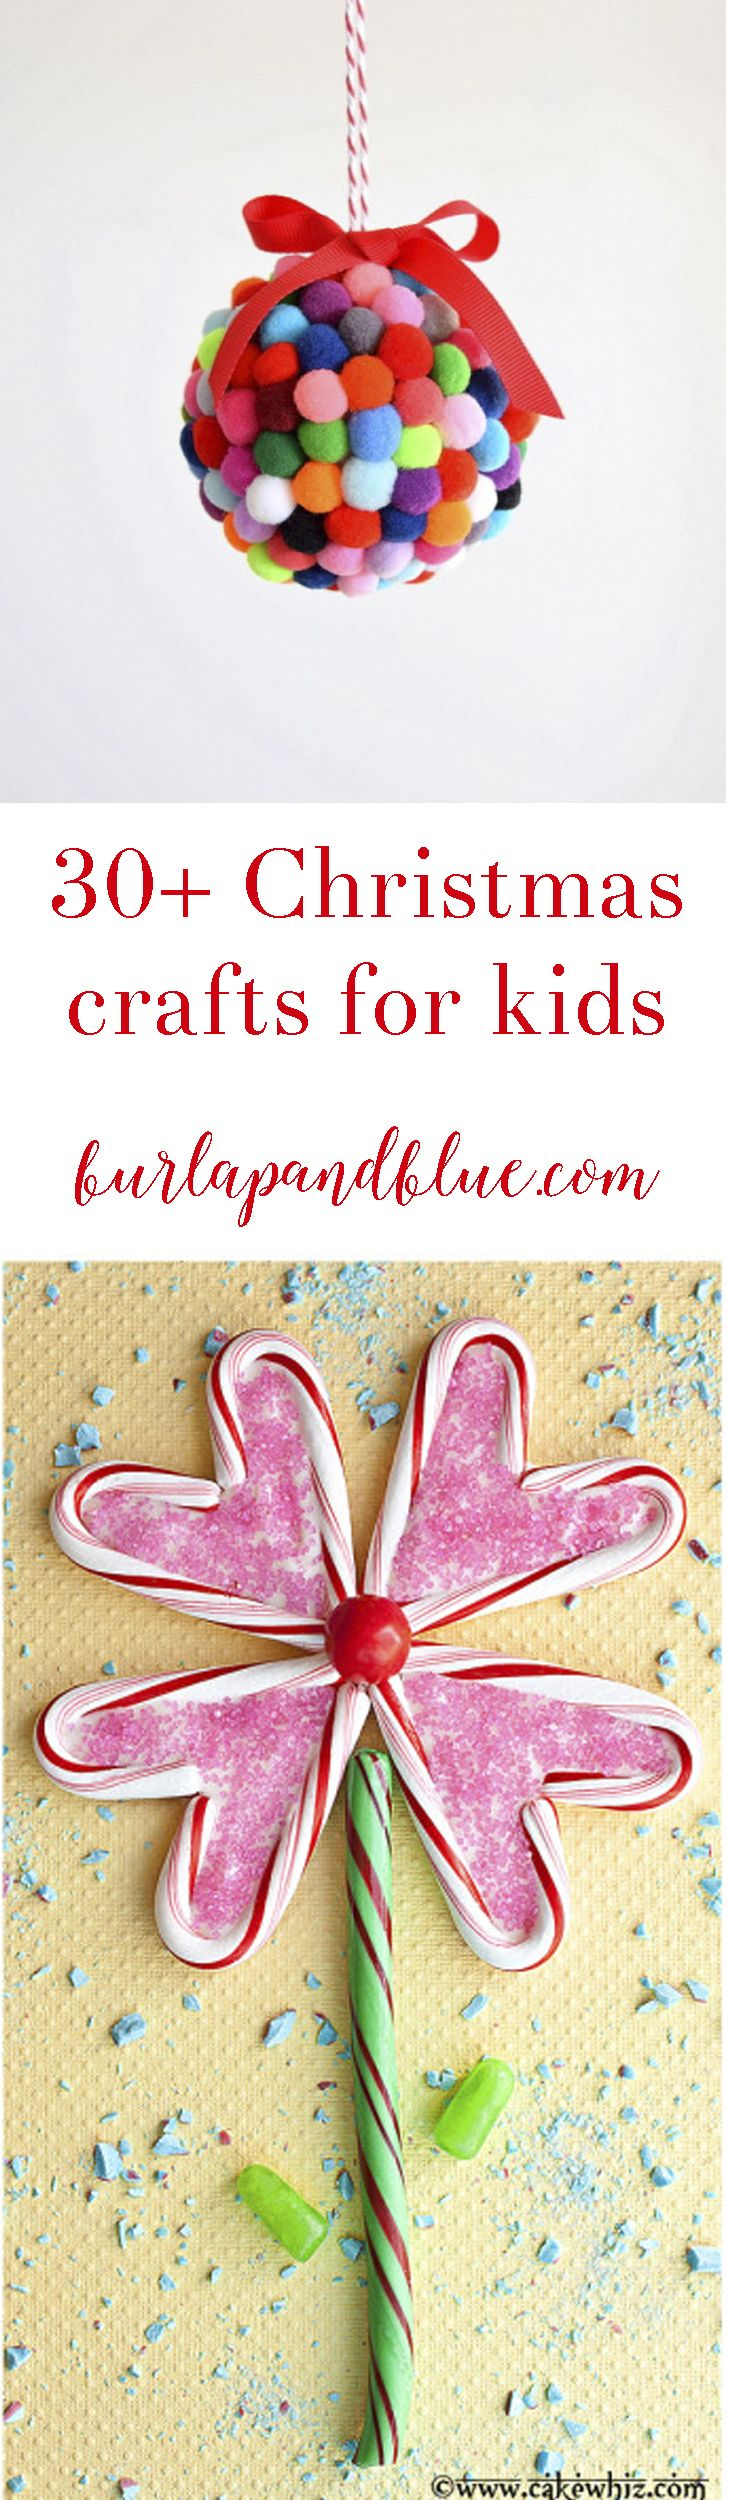 Kids Christmas Crafts Best 25 Holiday Crafts For Kids Ideas On Pinterest Christmas